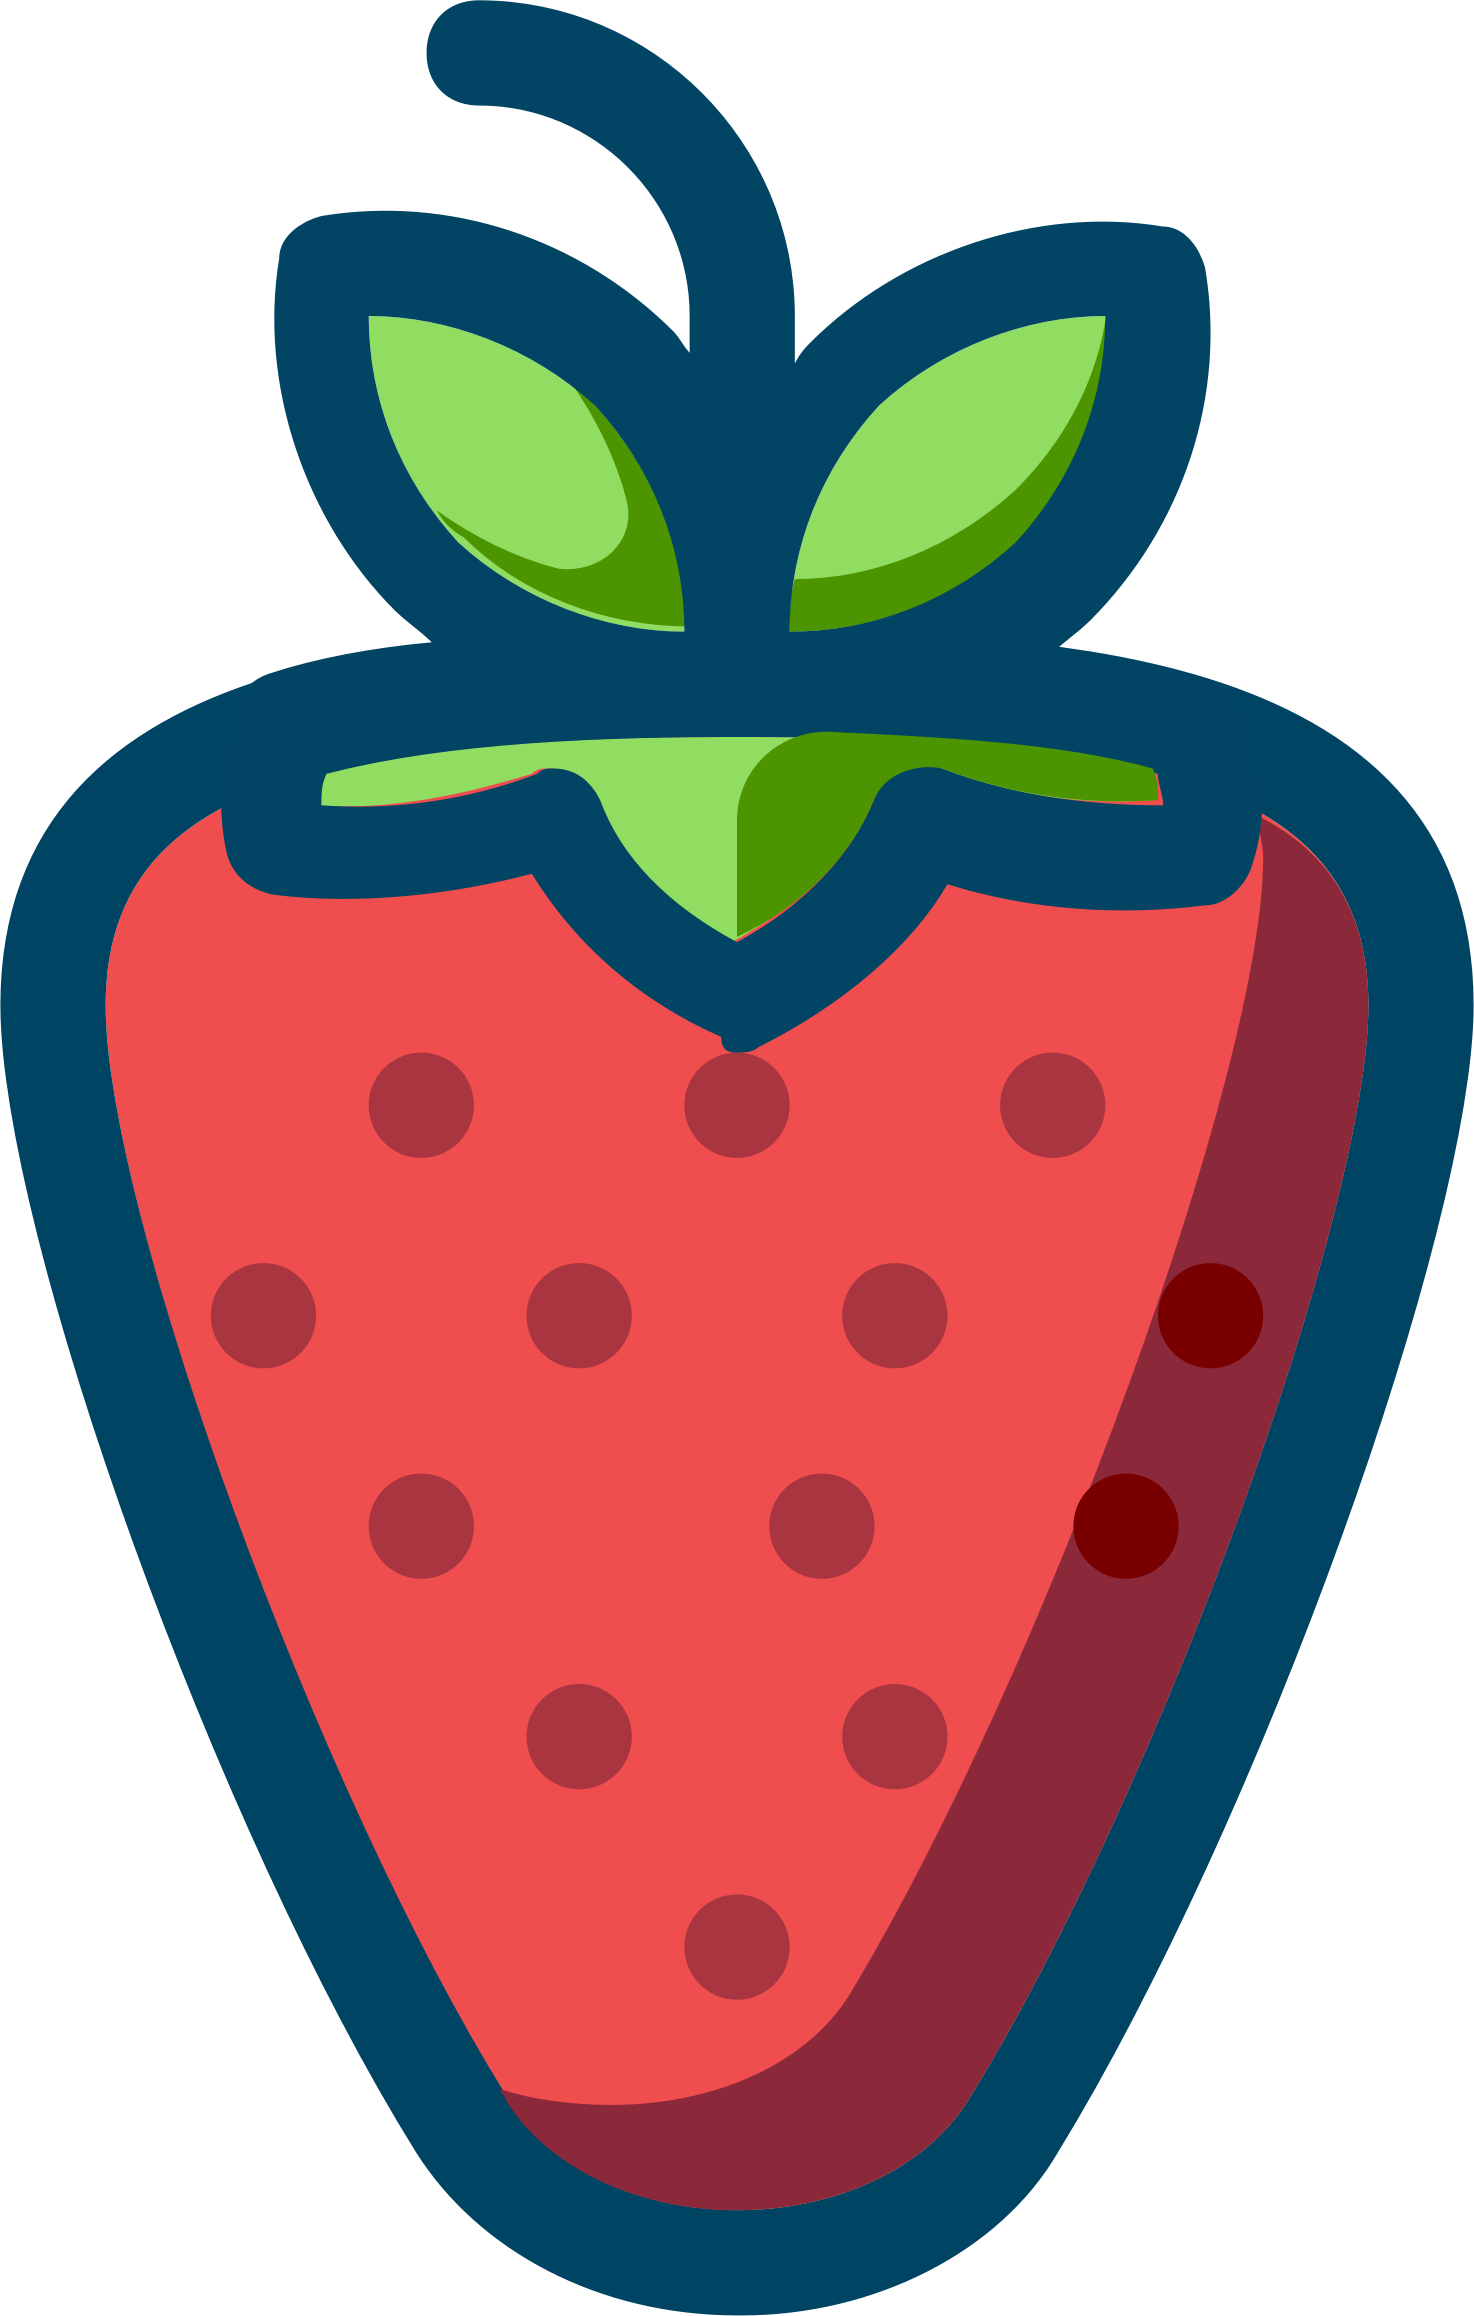 Strawberries clipart silhouette. Strawberry big image png